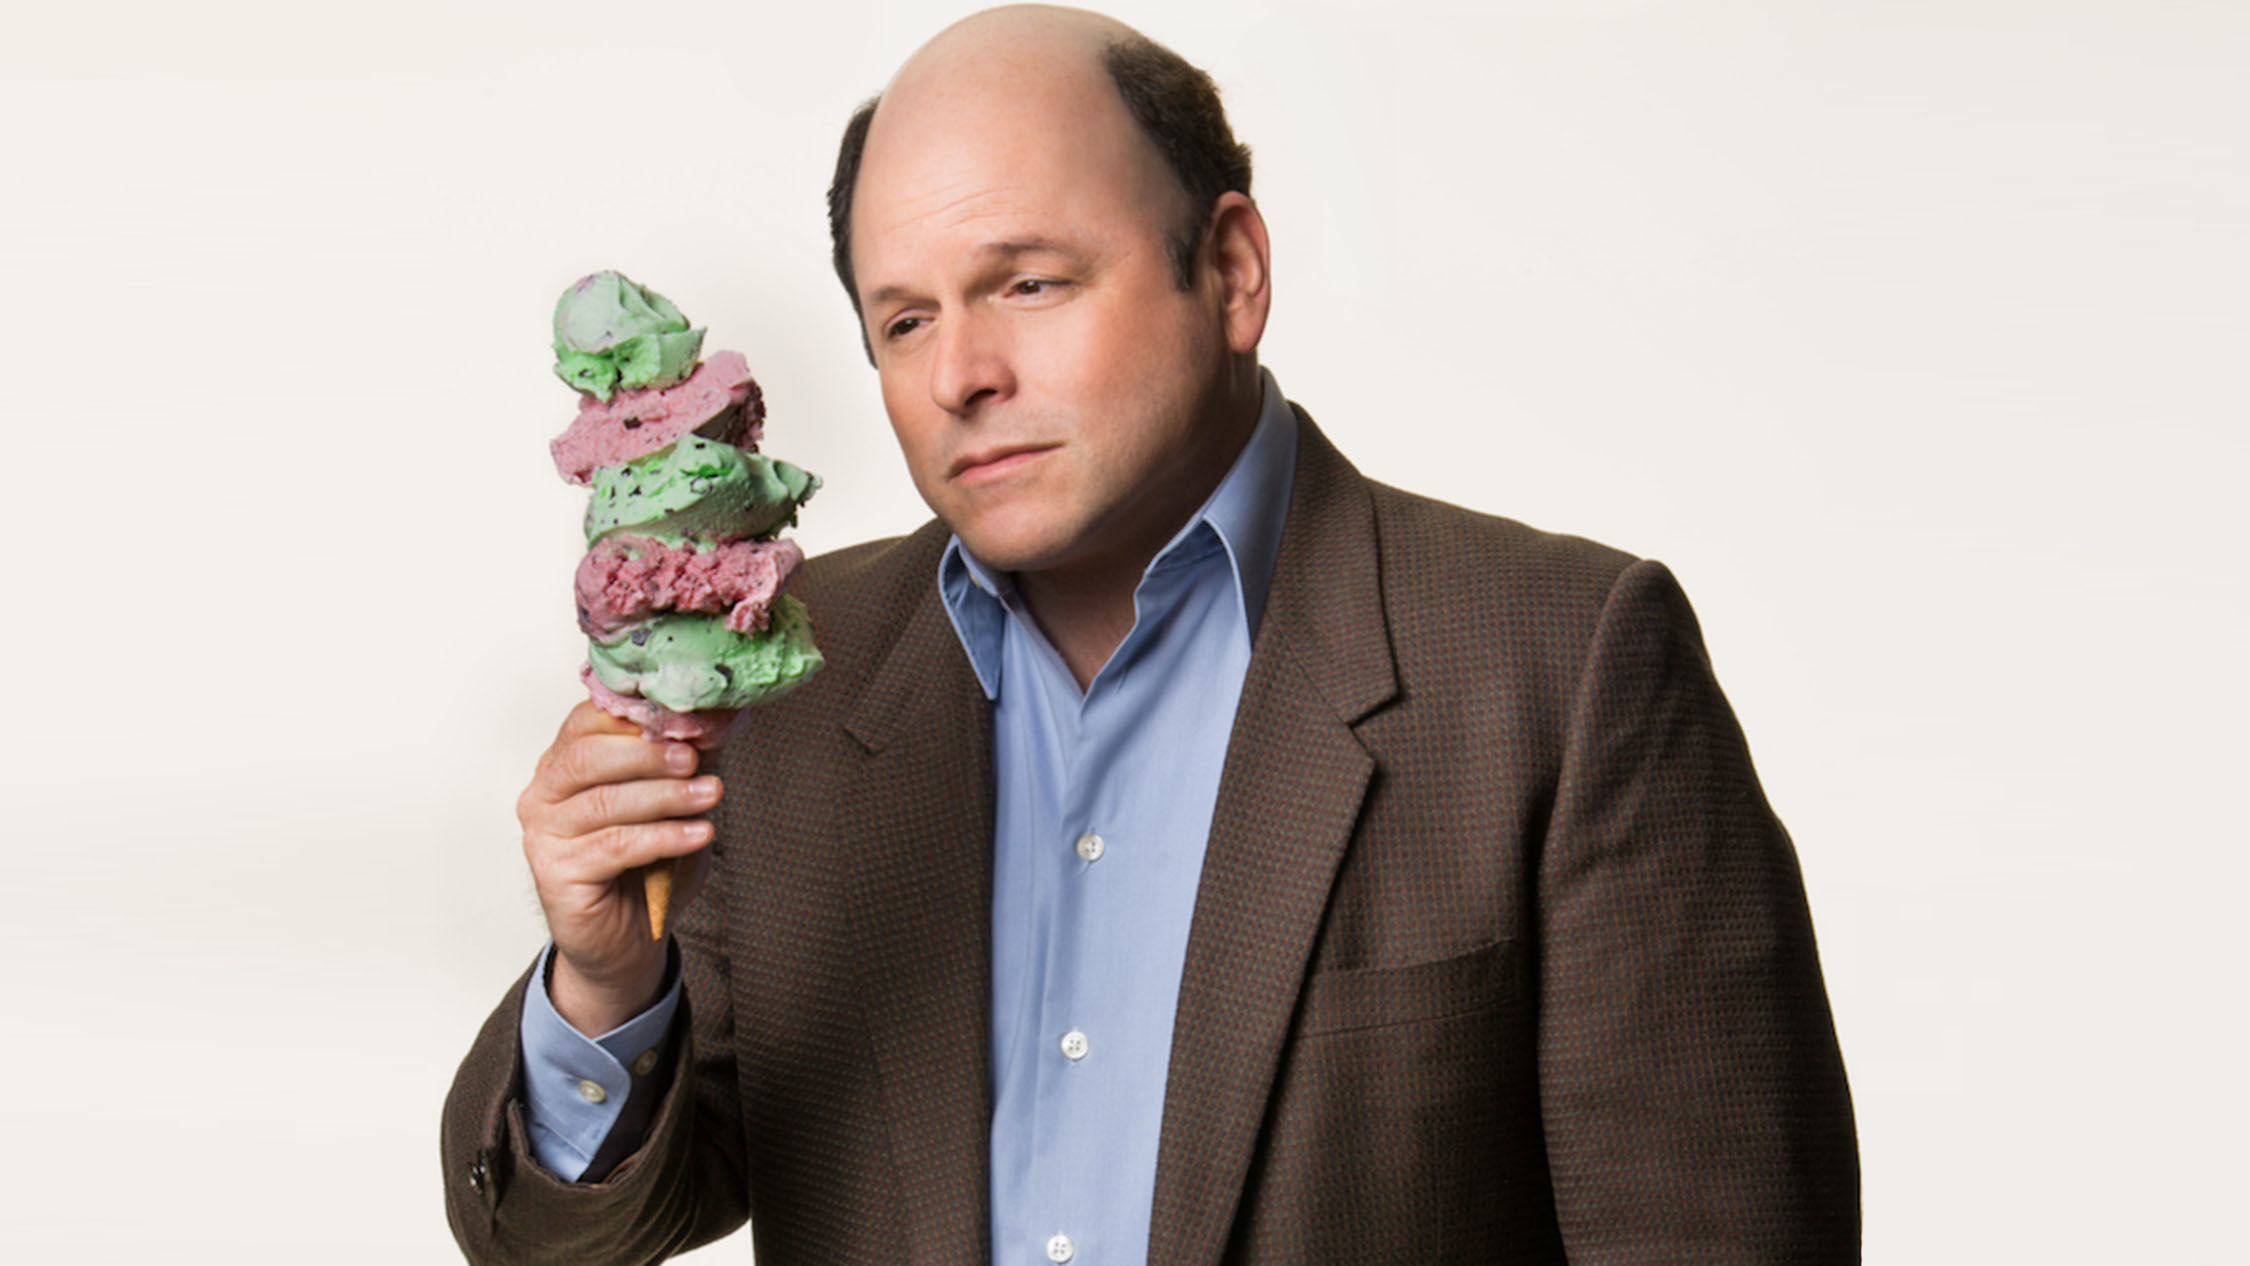 Jason Alexander: The Master of His Domain